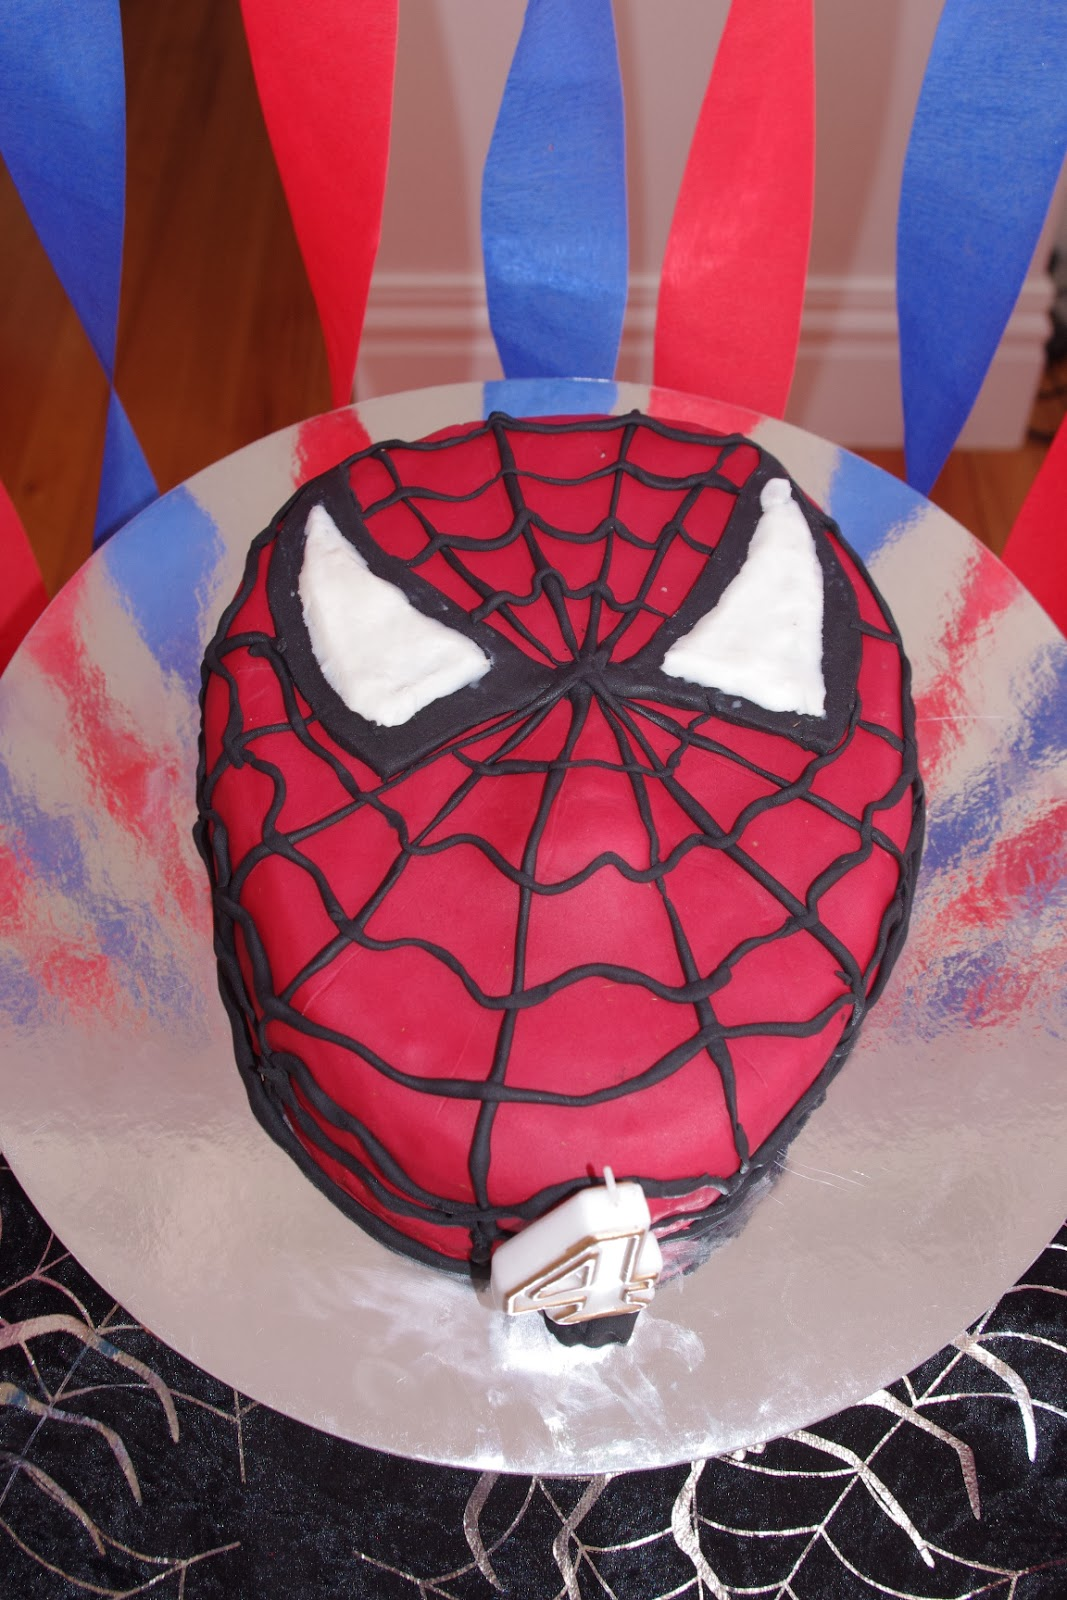 spiderman template for cake - the noatbook how i made a spiderman cake